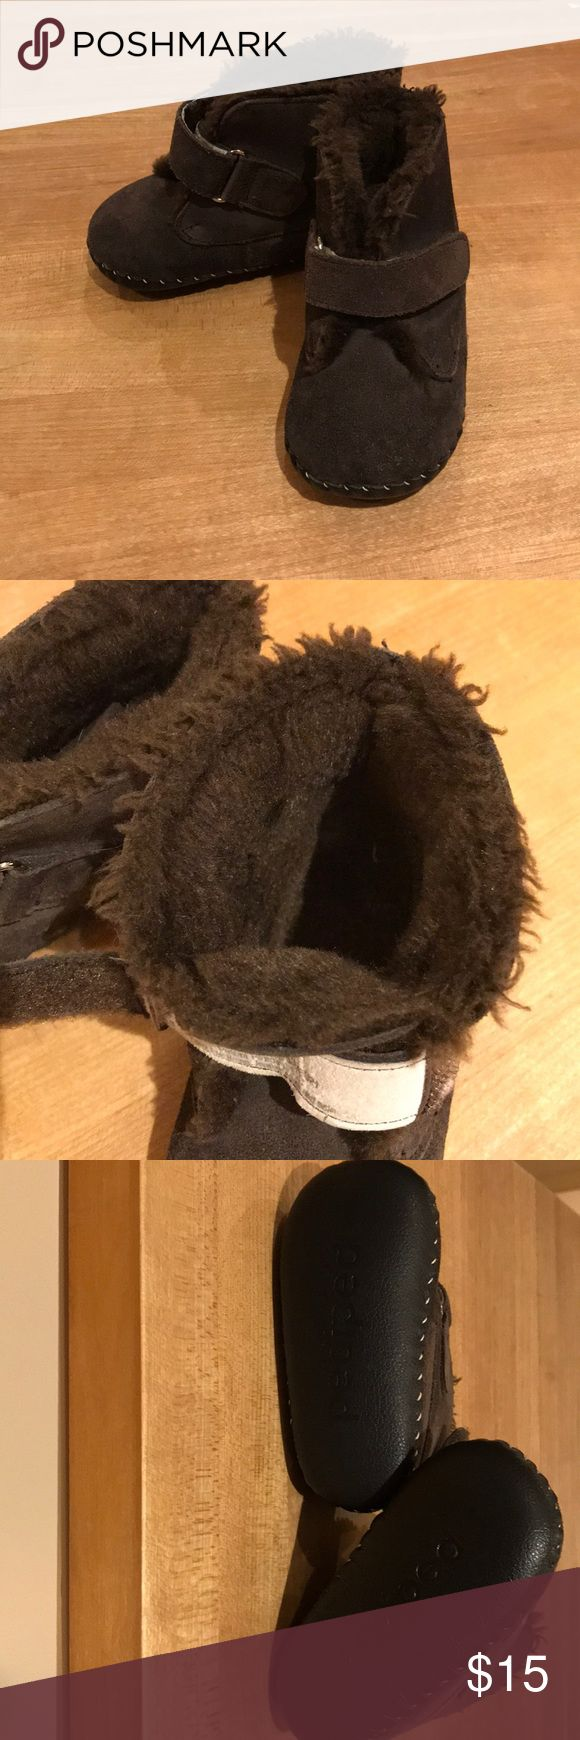 Pediped fuzzy lined boots 18-24 months Dark brown Pediped boots sized 18-24 months. Worn only once, in excellent condition! Leather upper and sole. pediped Shoes Baby & Walker